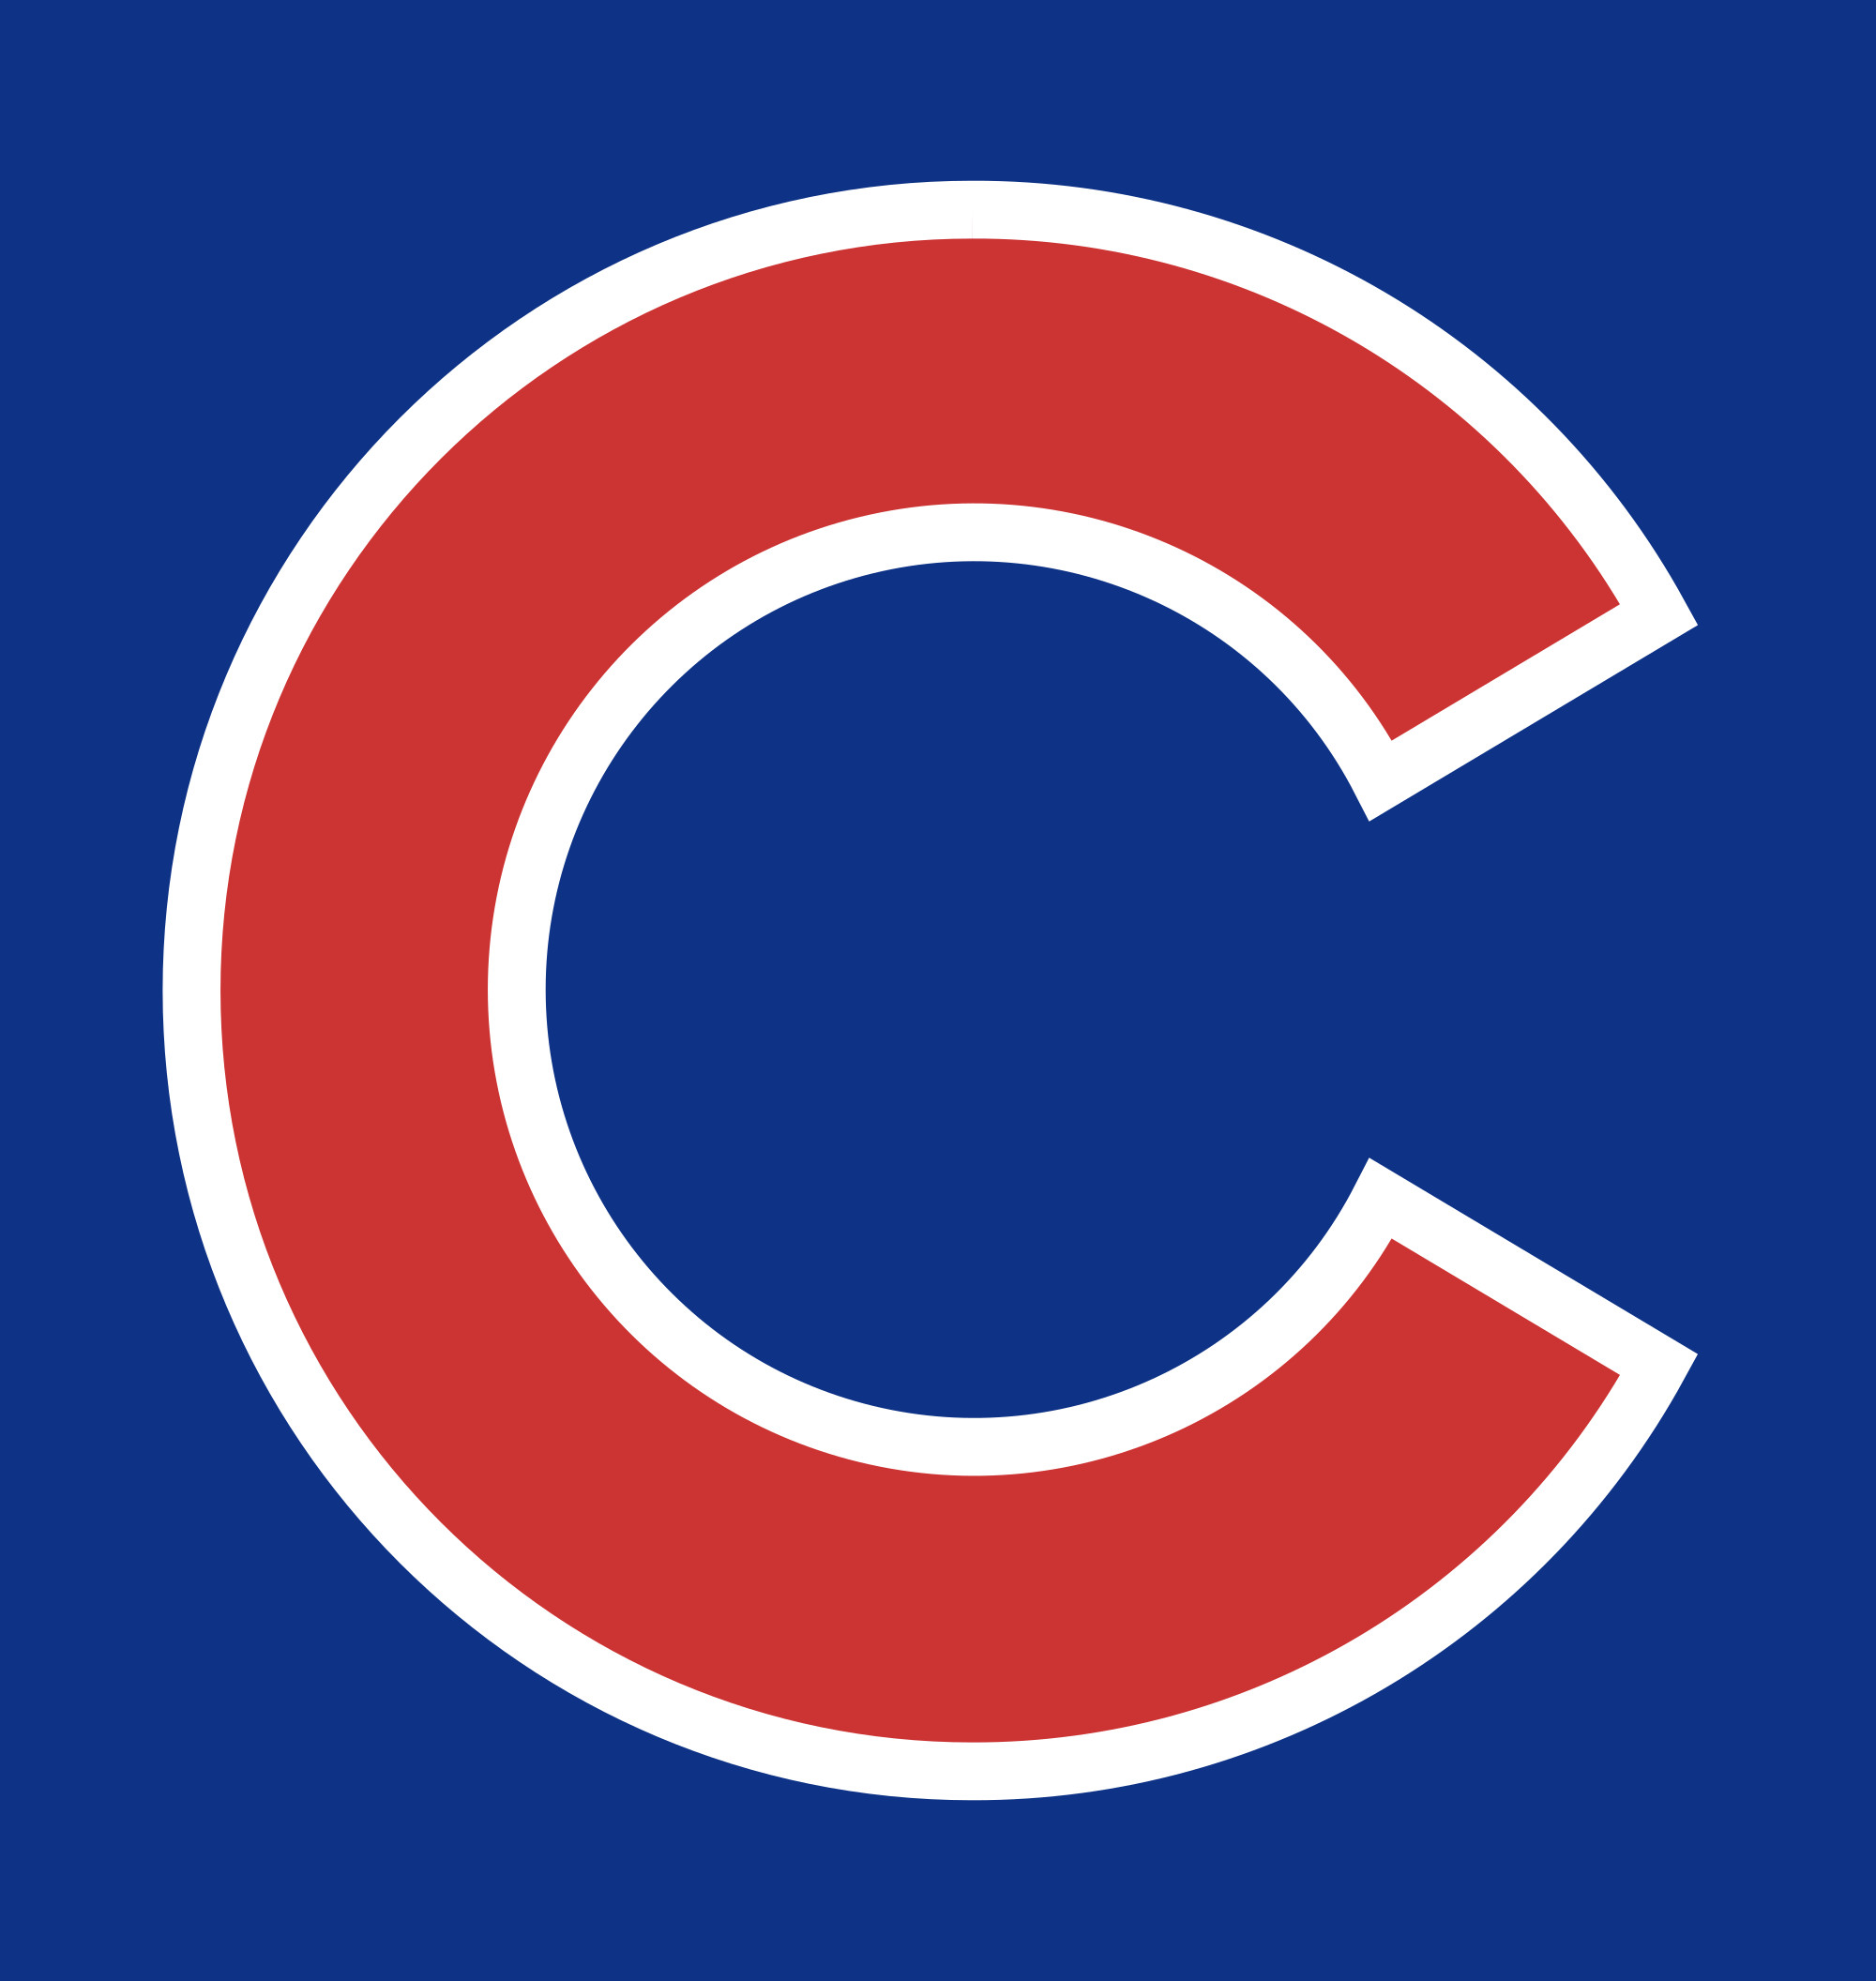 2000x2112 Cubs W Clip Art Chicago Cubs Logo Redesign Contest alihkan.us